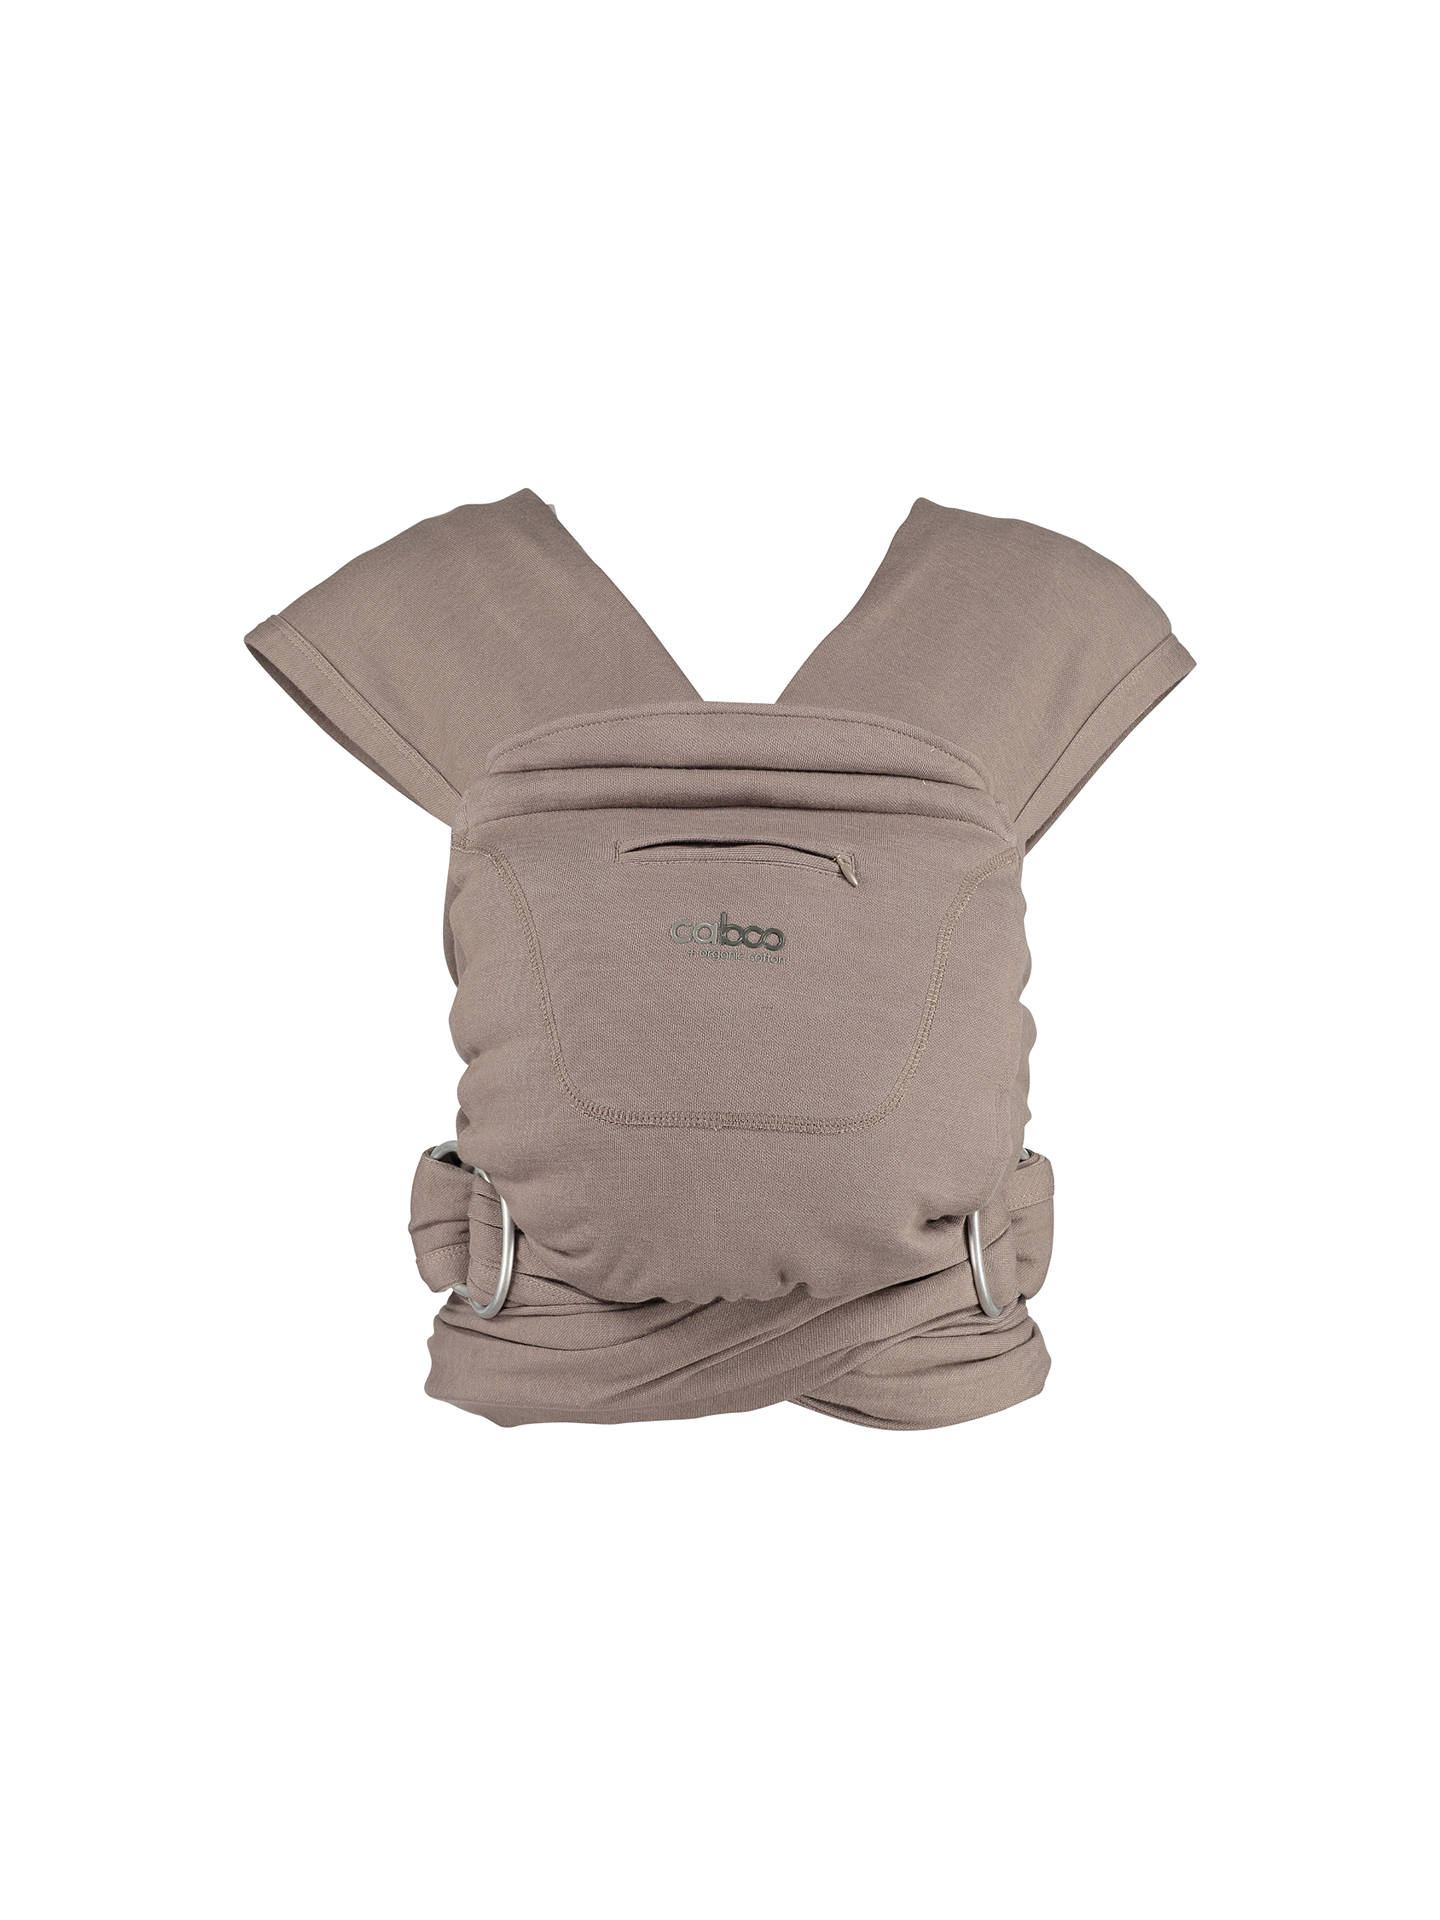 BuyClose Parent Caboo+ Organic Baby Carrier, Driftwood Online at johnlewis.com